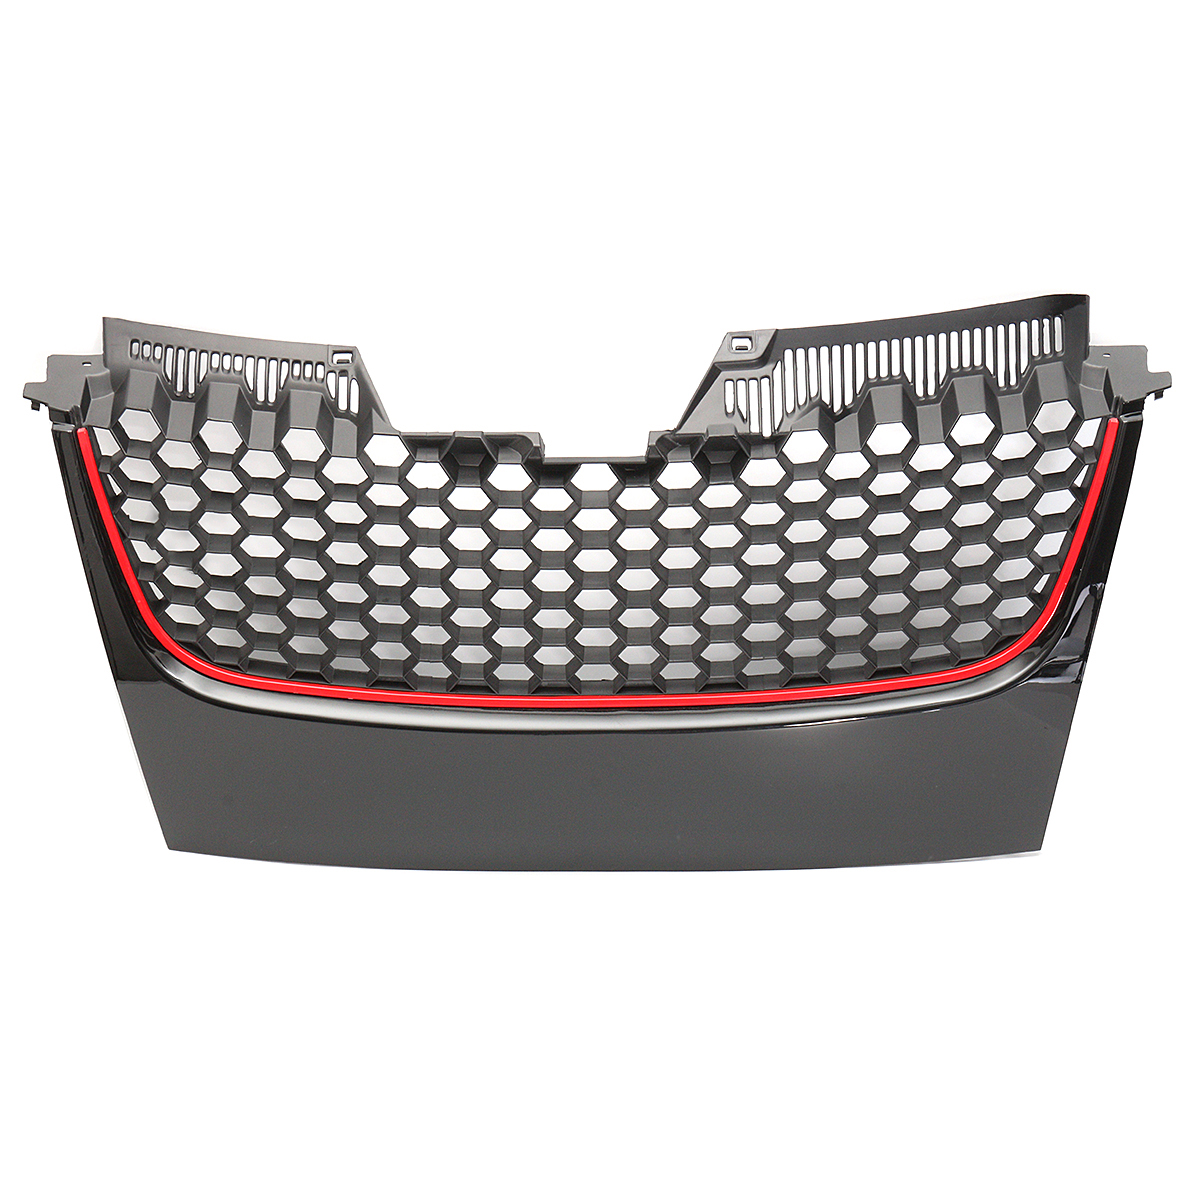 Car Front Bumper Grill Grille Red Strip for Volkswagen for VW Mk5 Golf Jetta Gti Gt Sport 2006-2018Car Front Bumper Grill Grille Red Strip for Volkswagen for VW Mk5 Golf Jetta Gti Gt Sport 2006-2018